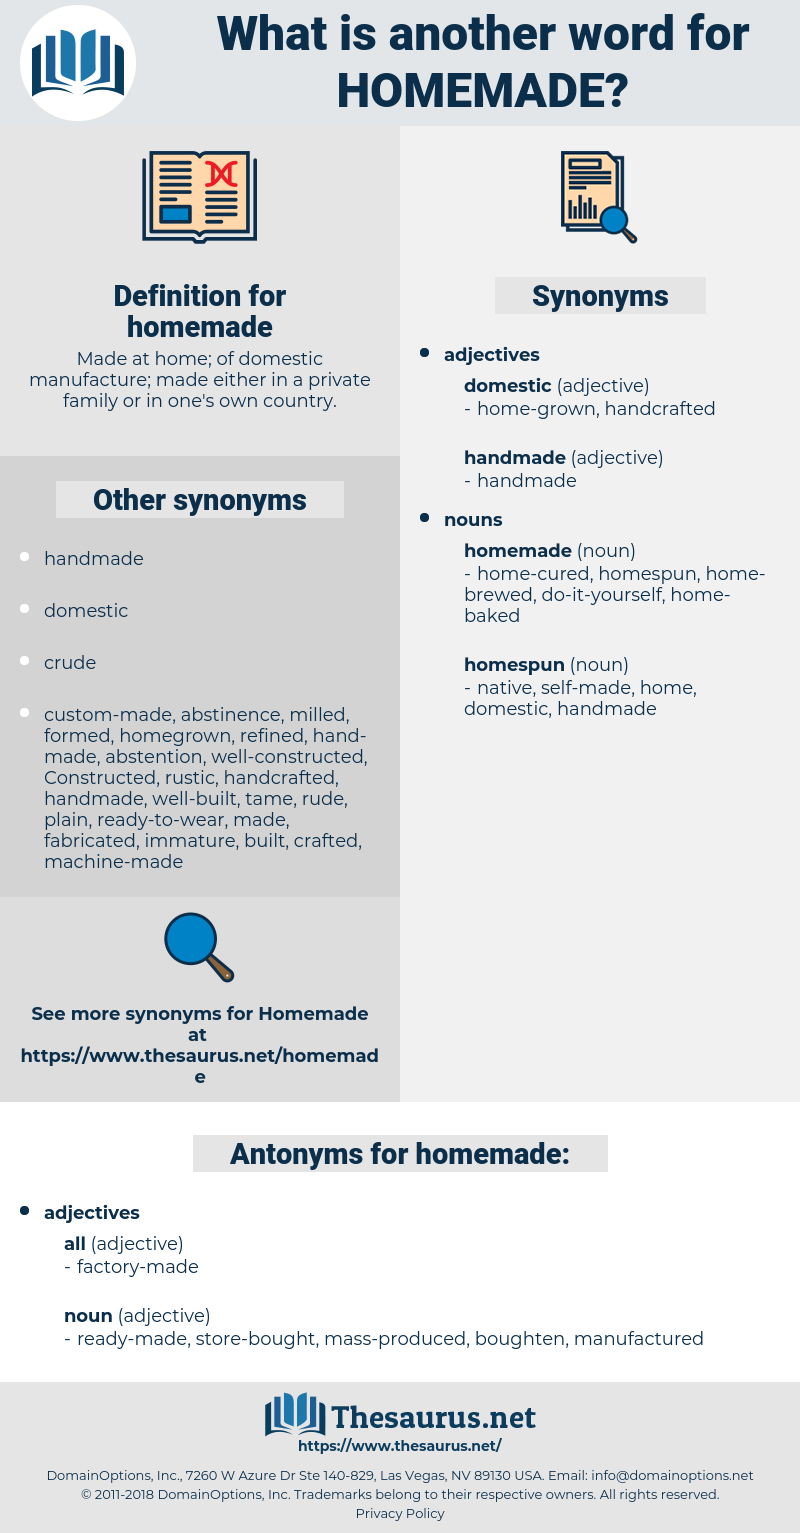 homemade, synonym homemade, another word for homemade, words like homemade, thesaurus homemade